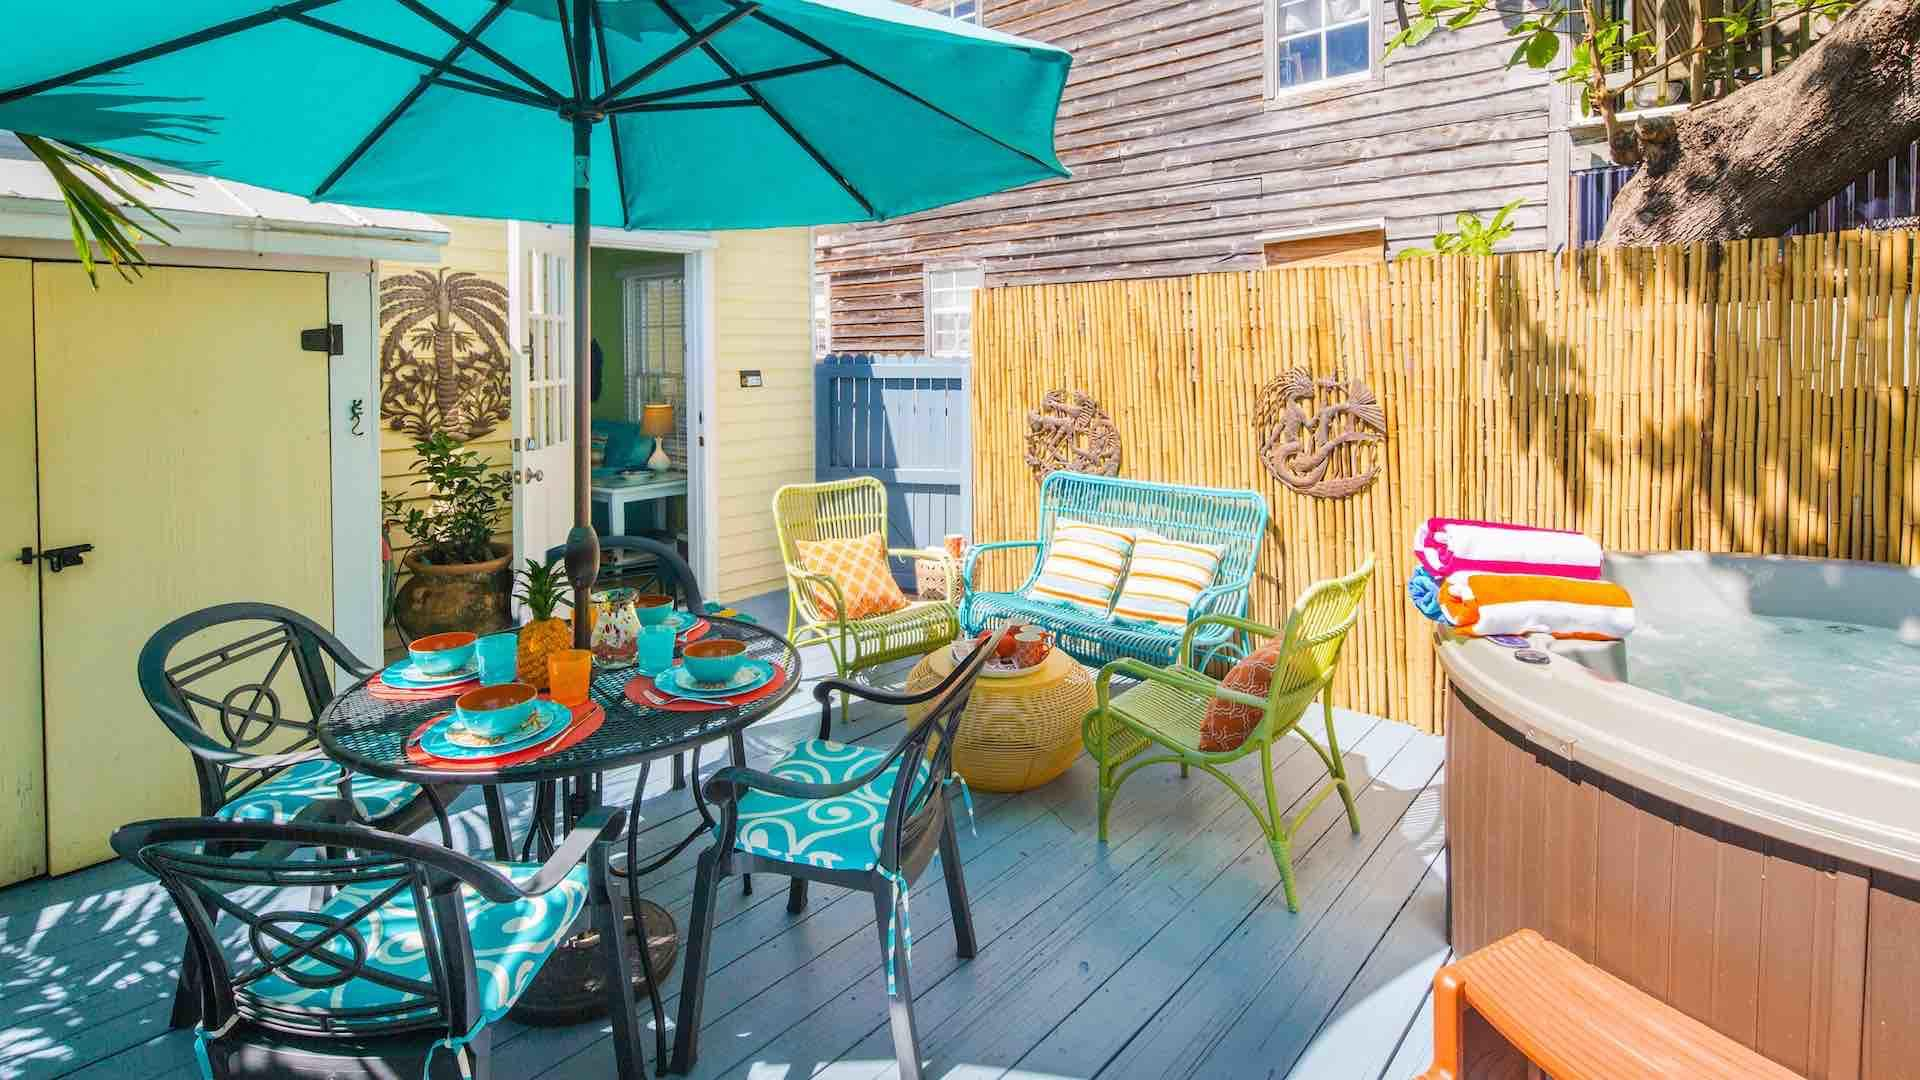 The Mellow Macaw is a tropical Old Town apartment with a spacious outdoor porch area...